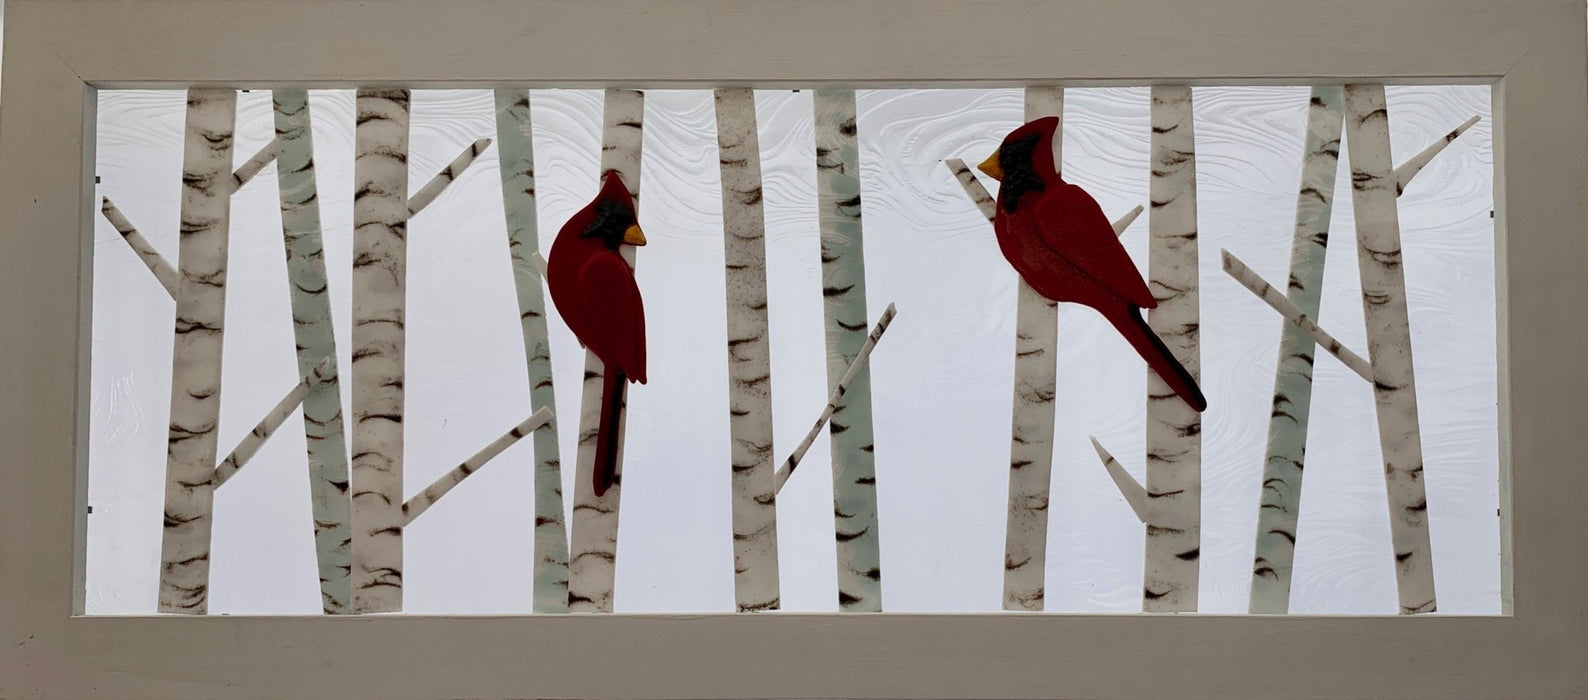 Med Cardinals and Chickadees - Artfest Ontario - Out of Ruins - Glass Work